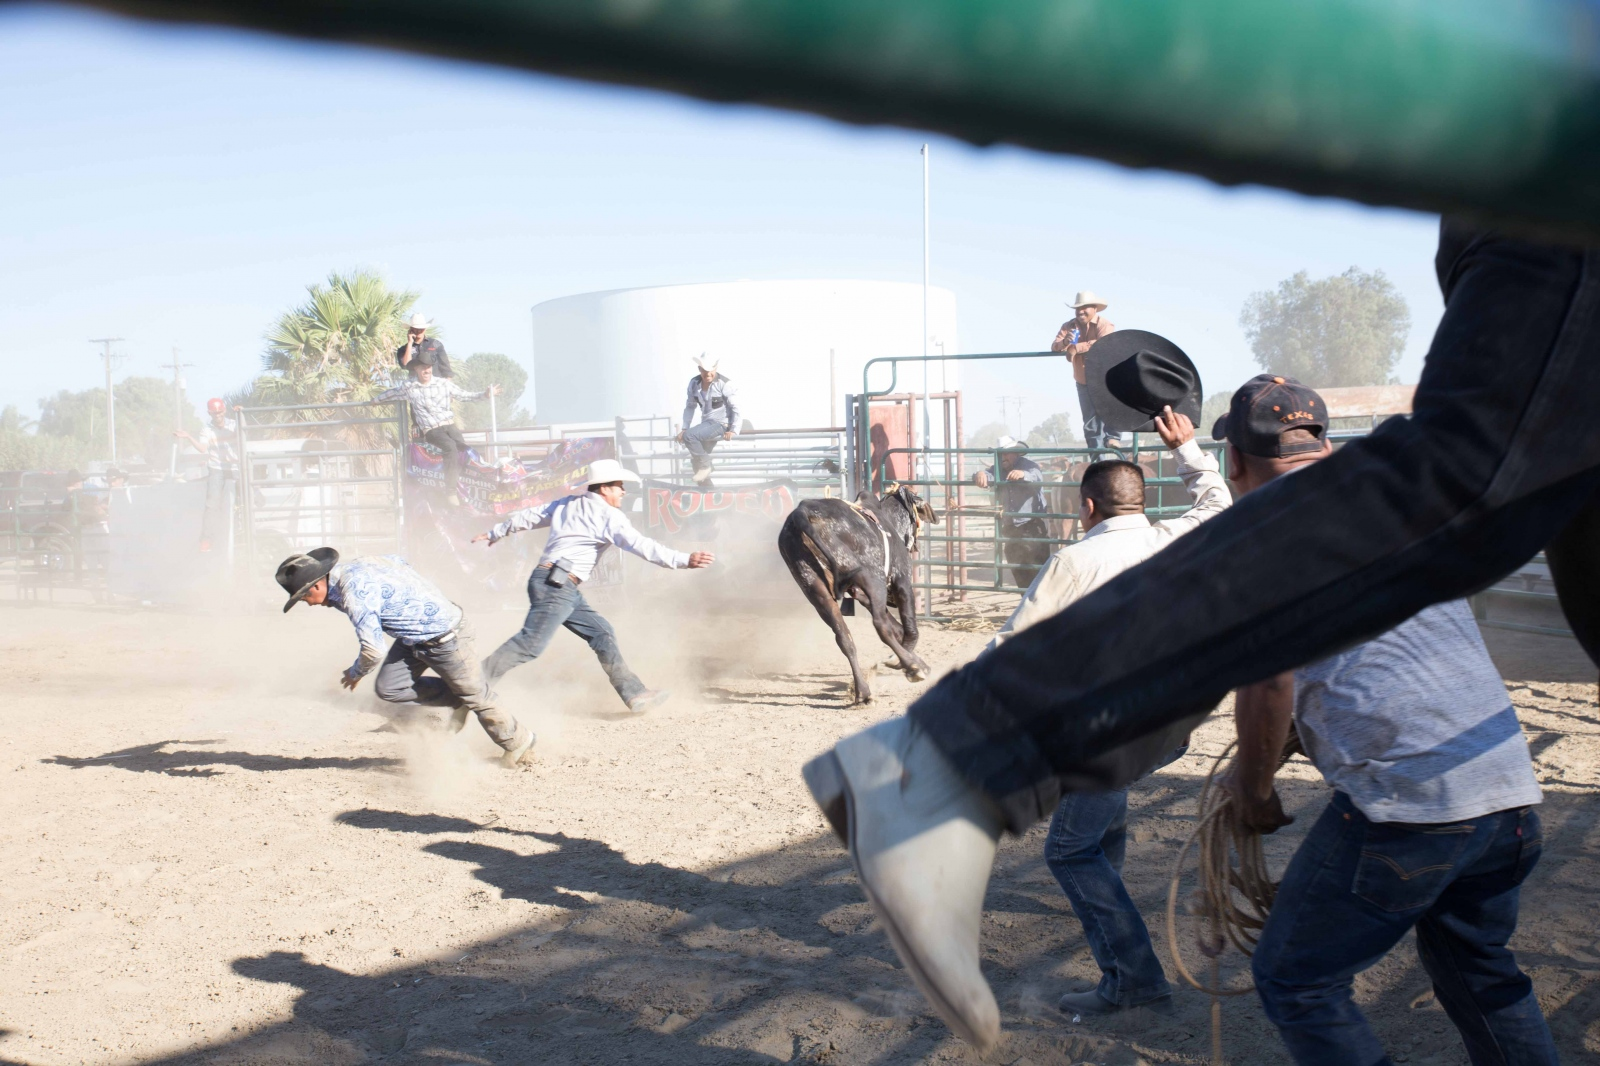 Men run from a loose bull during a rodeo in Huron, California. Drought has taken its toll on towns in the westside of the Central Valley and Huron has seen its population dwindle as farmworkers move to other cities and states where there is more work. July 2016.